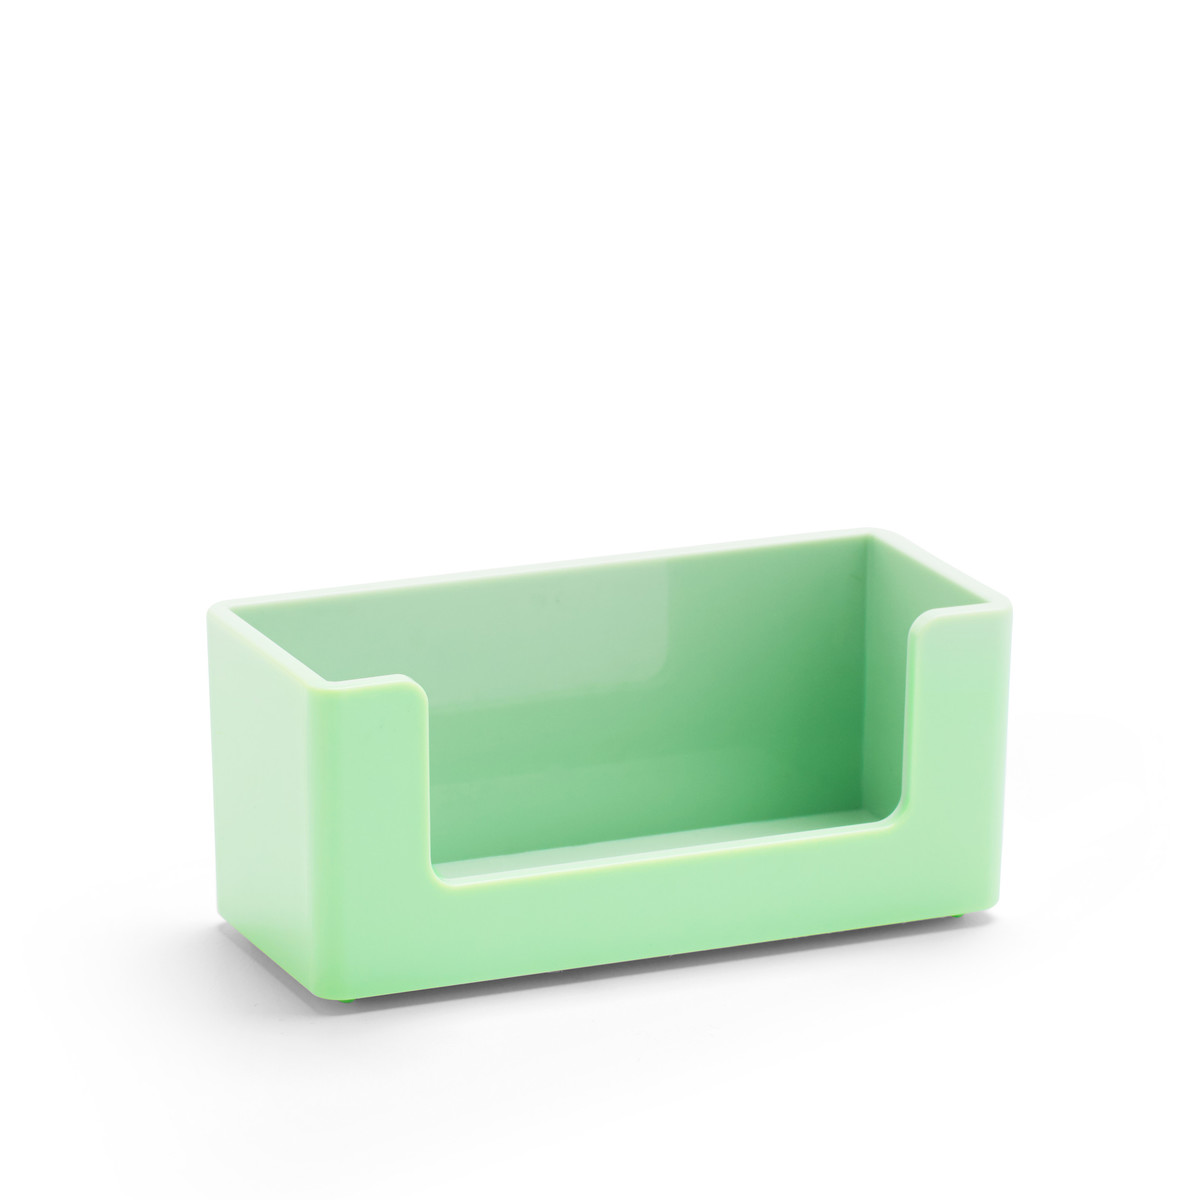 Mint business card holder desk accessories poppin images mint business card holder colourmoves